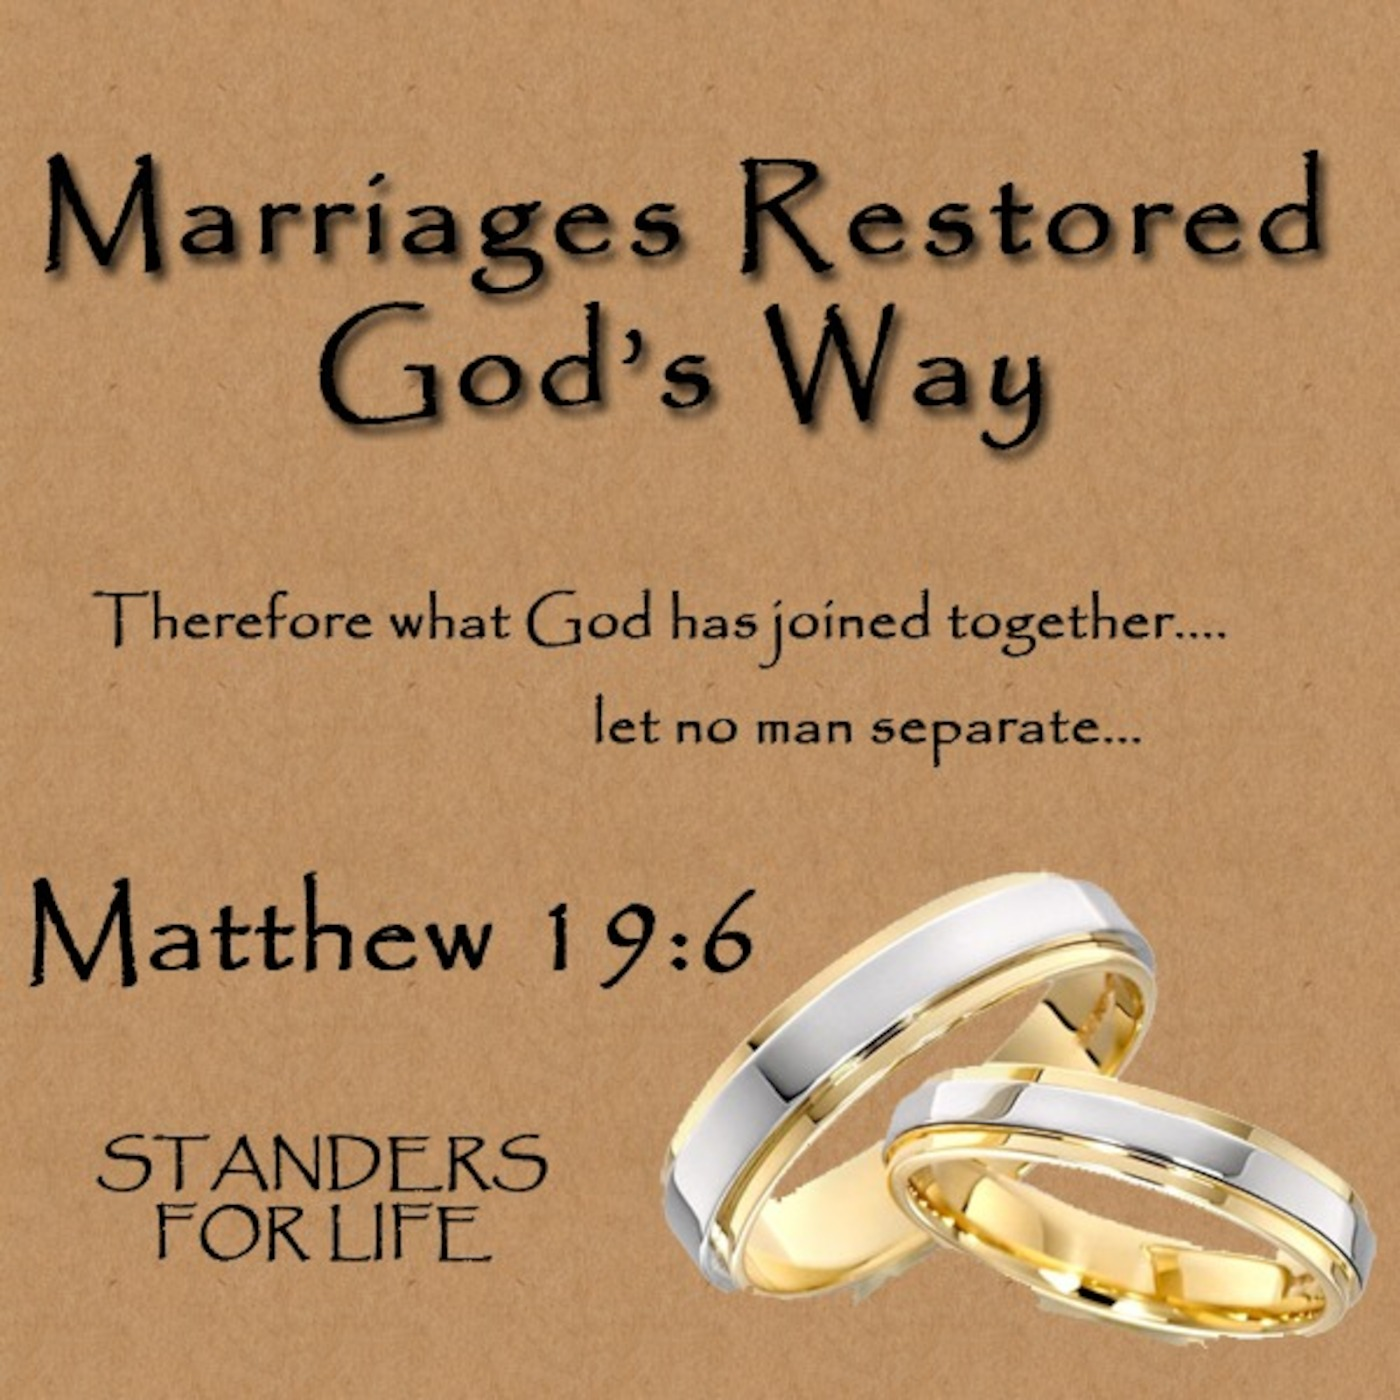 Marriages Restored God's Way